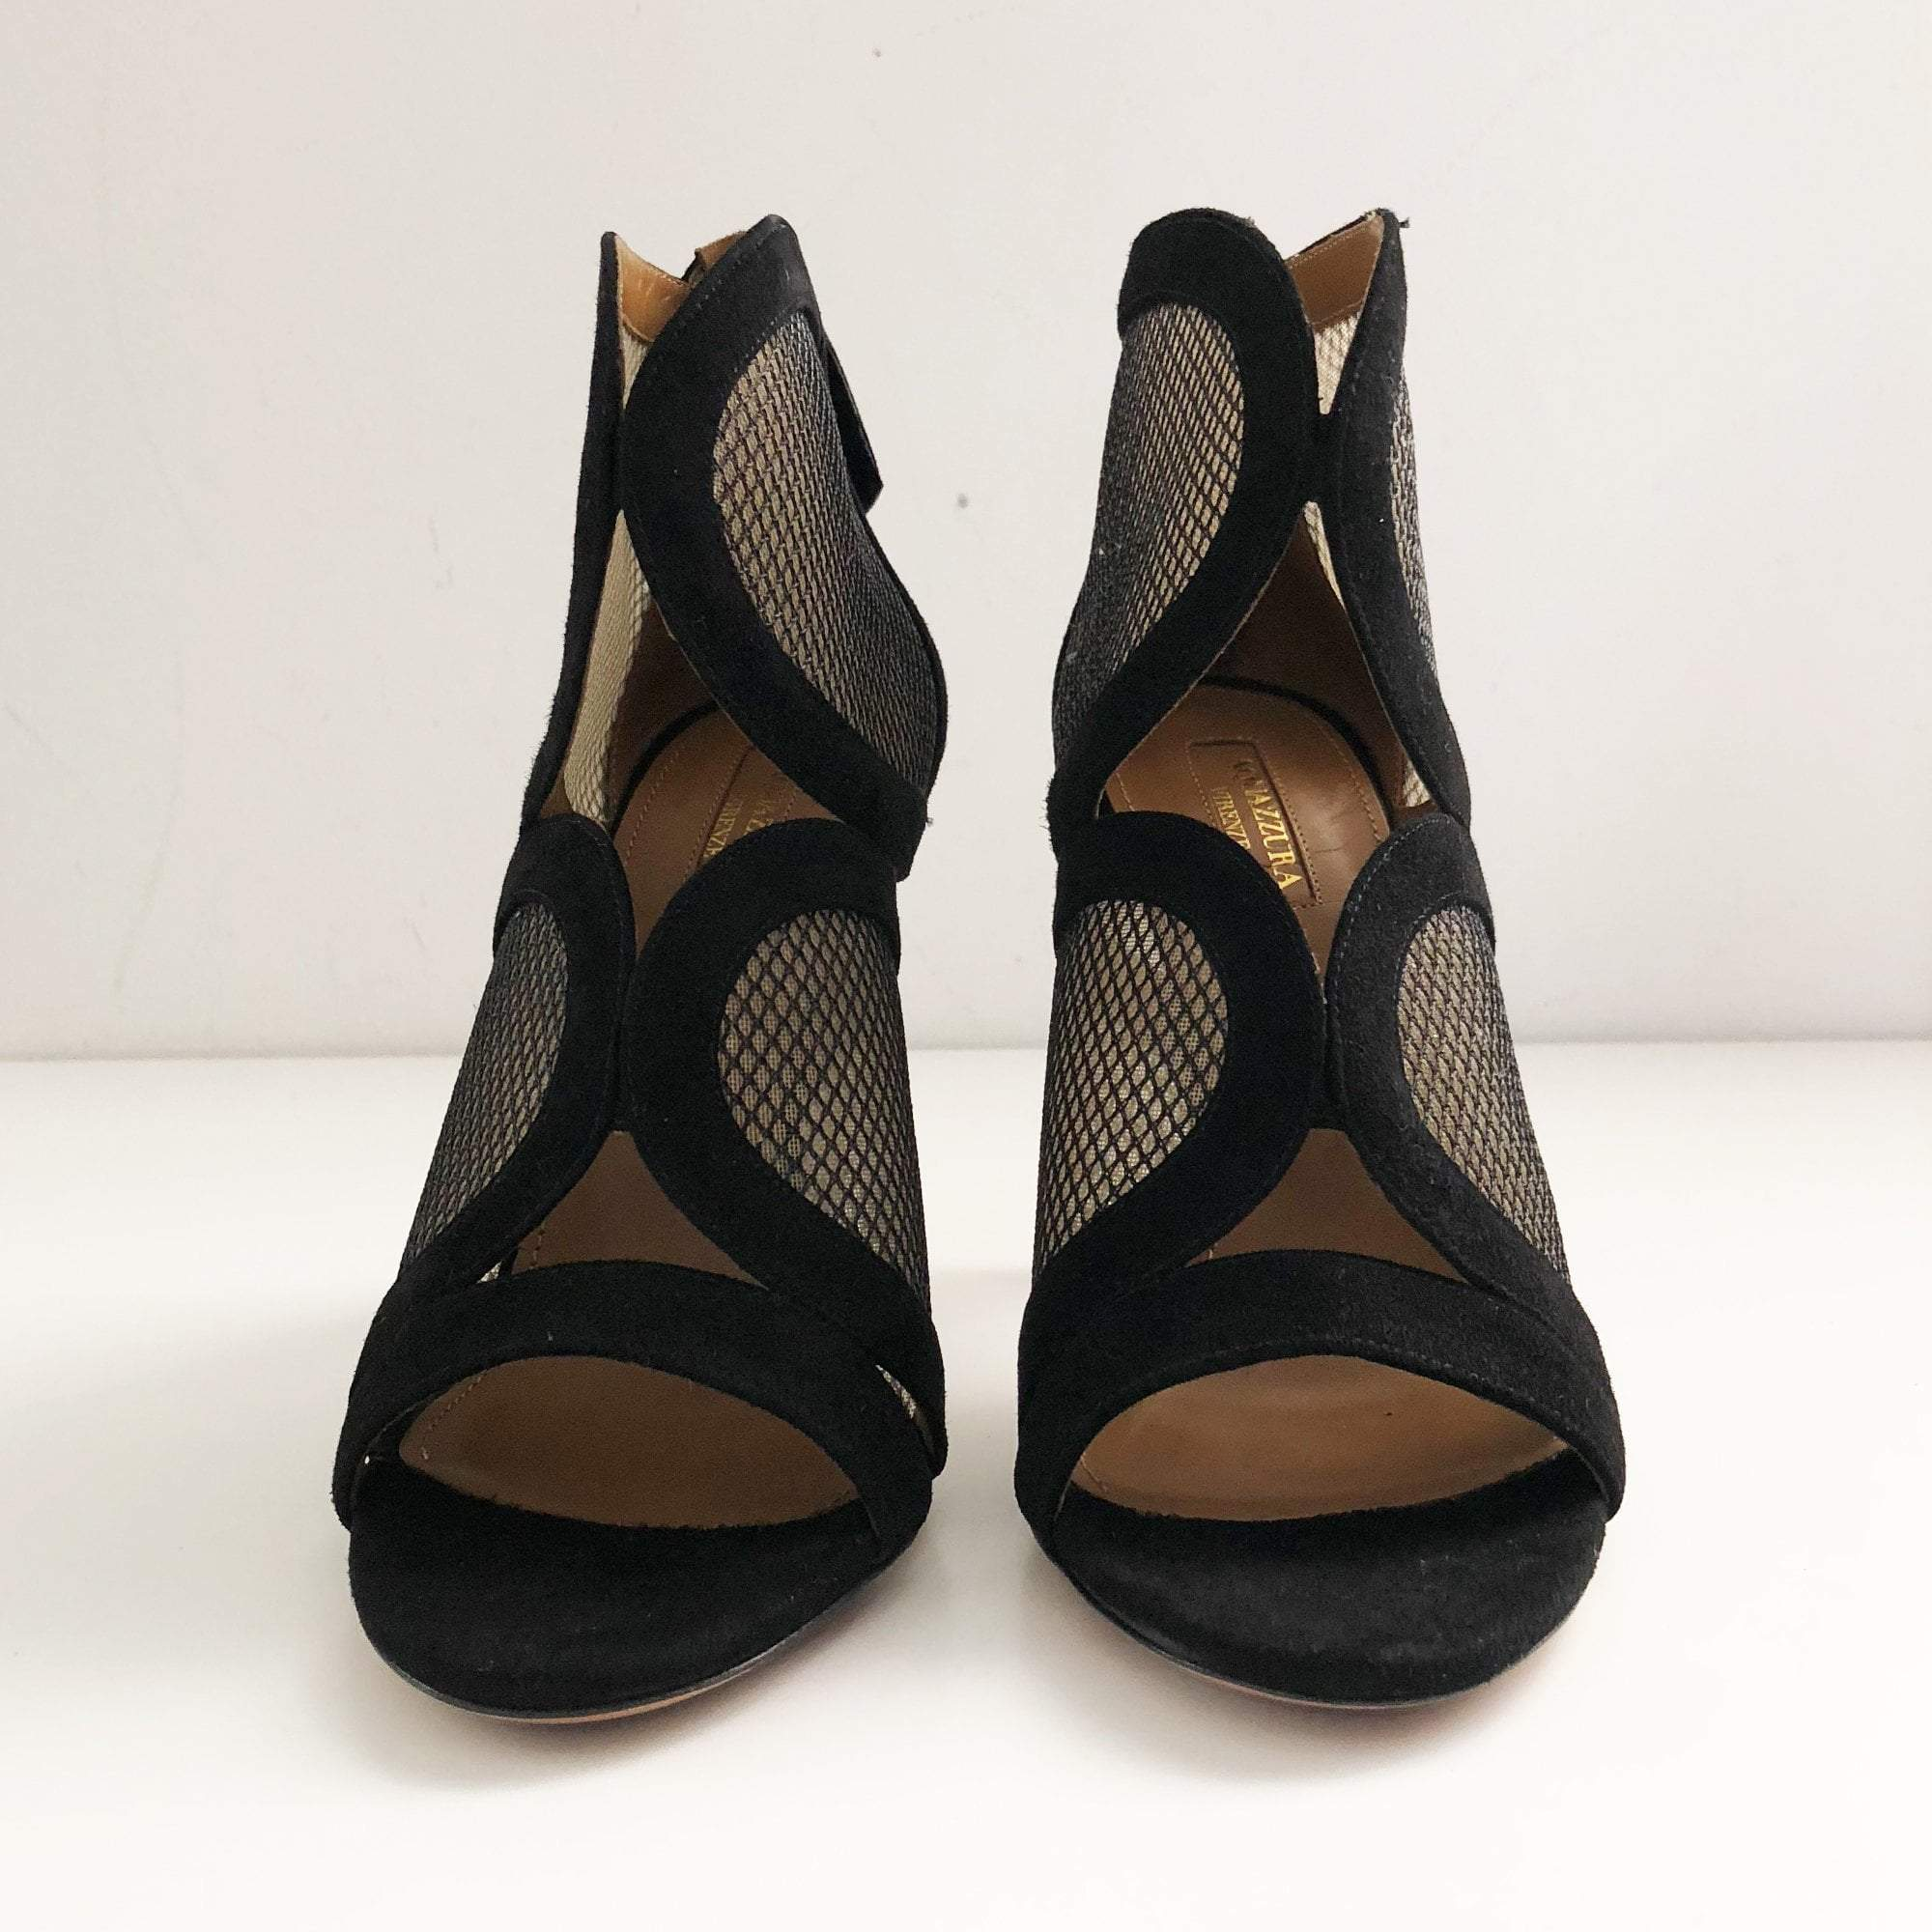 Aquazzura Black Flash Ankle Bootie